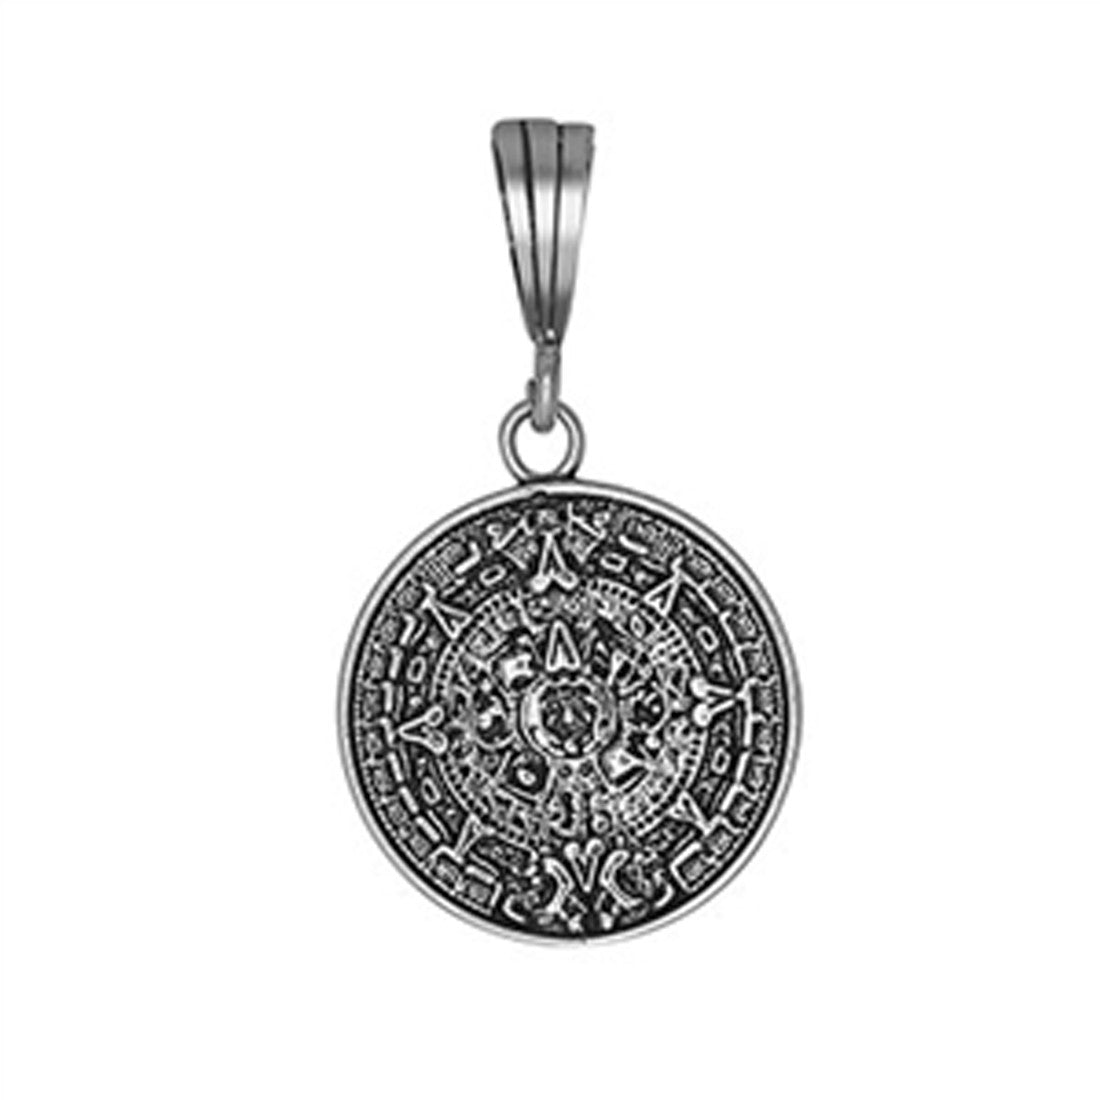 Aztec Calendar Pendant  925 Sterling Silver Oxidize charm 19mm Long-Blue Apple Jewelary